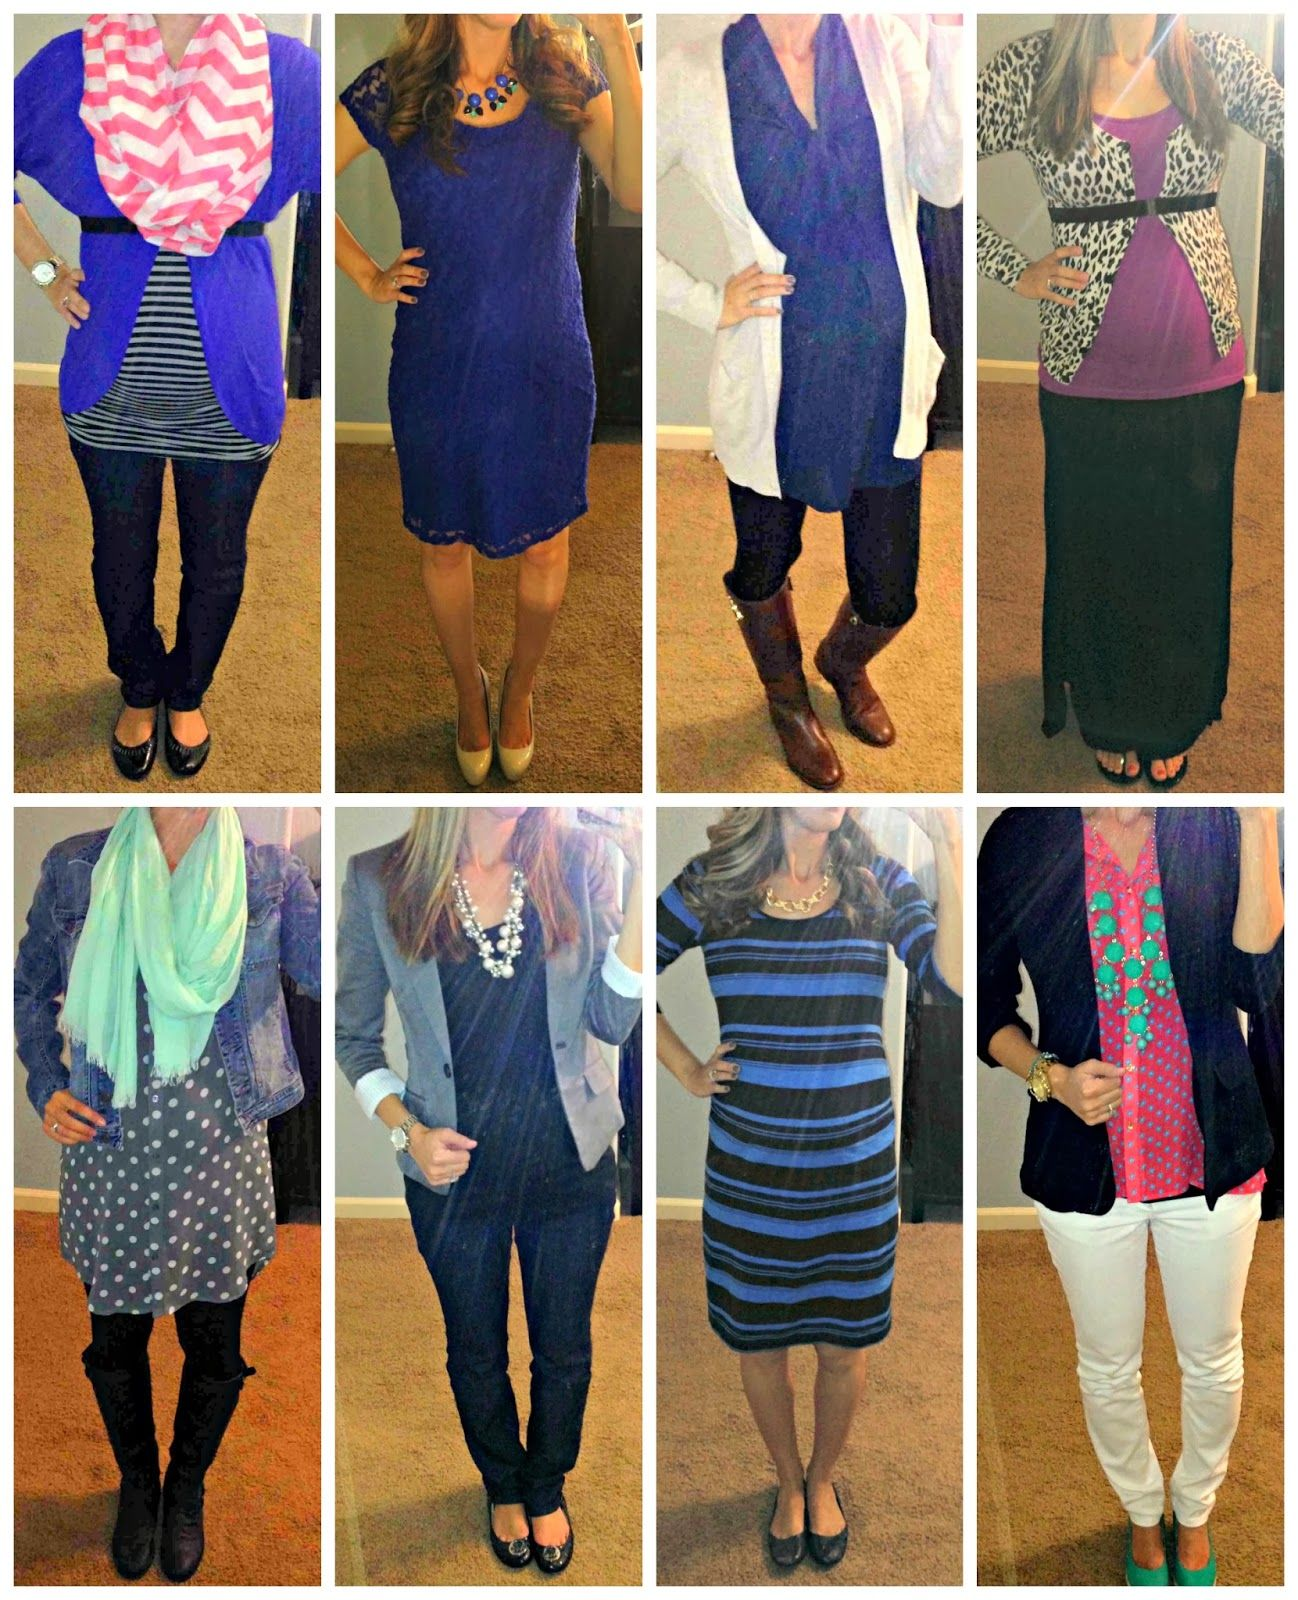 a6df8caf8b44c Katie's Closet, maternity fashion, maternity style, pregnancy fashion, pregnancy  style